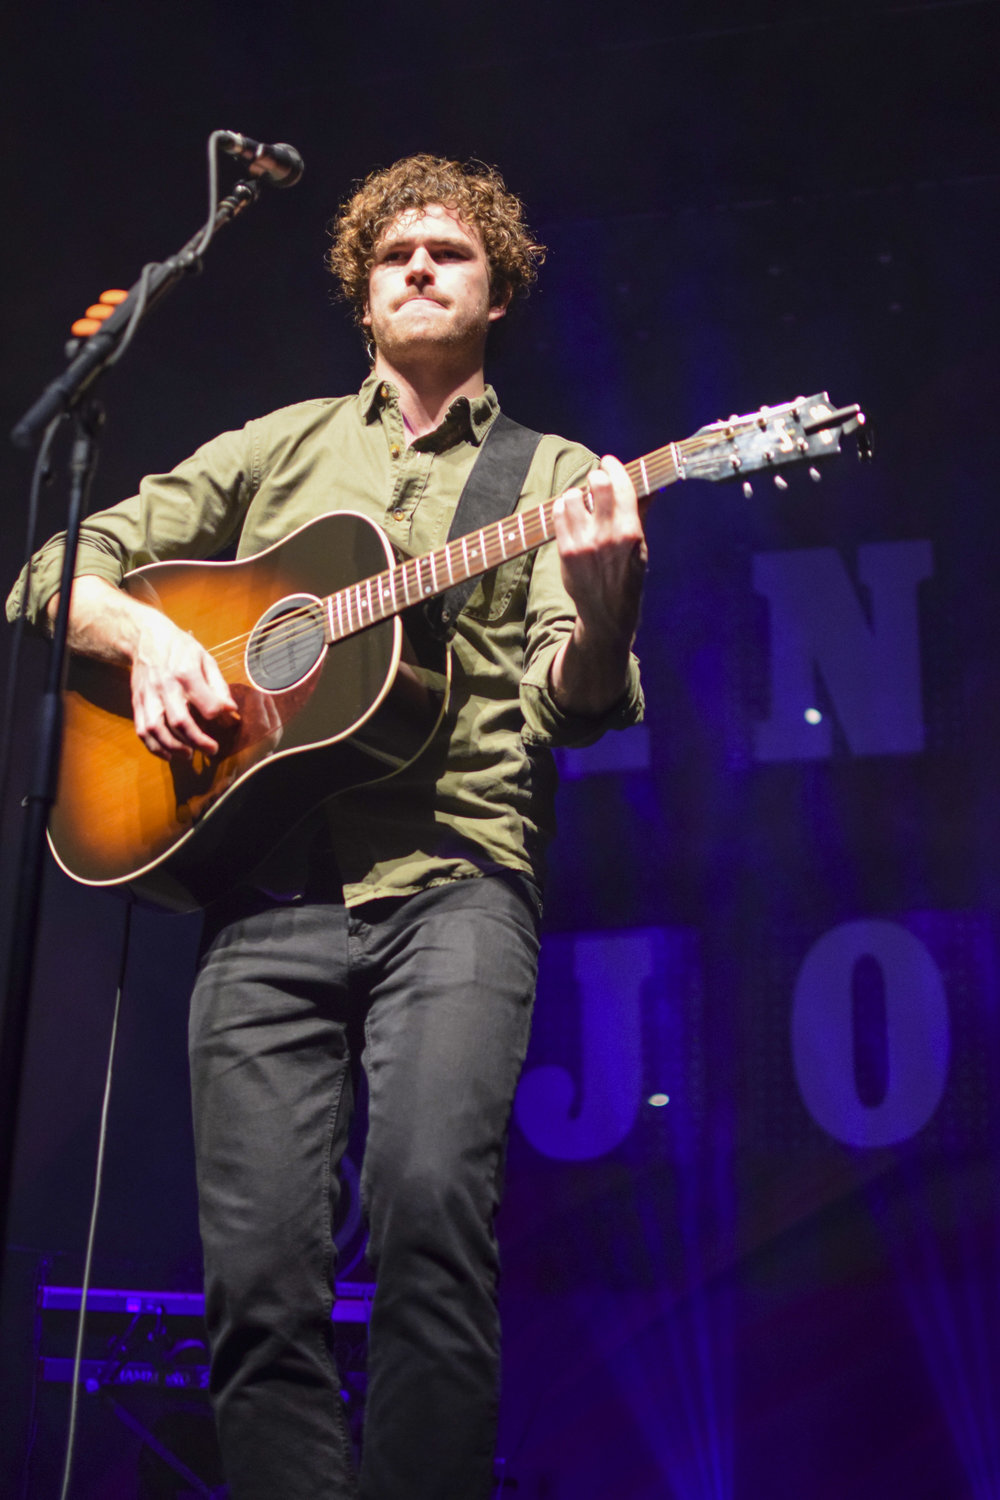 VanceJoy_Feb2016DSC_0197_Edited_Small.jpg